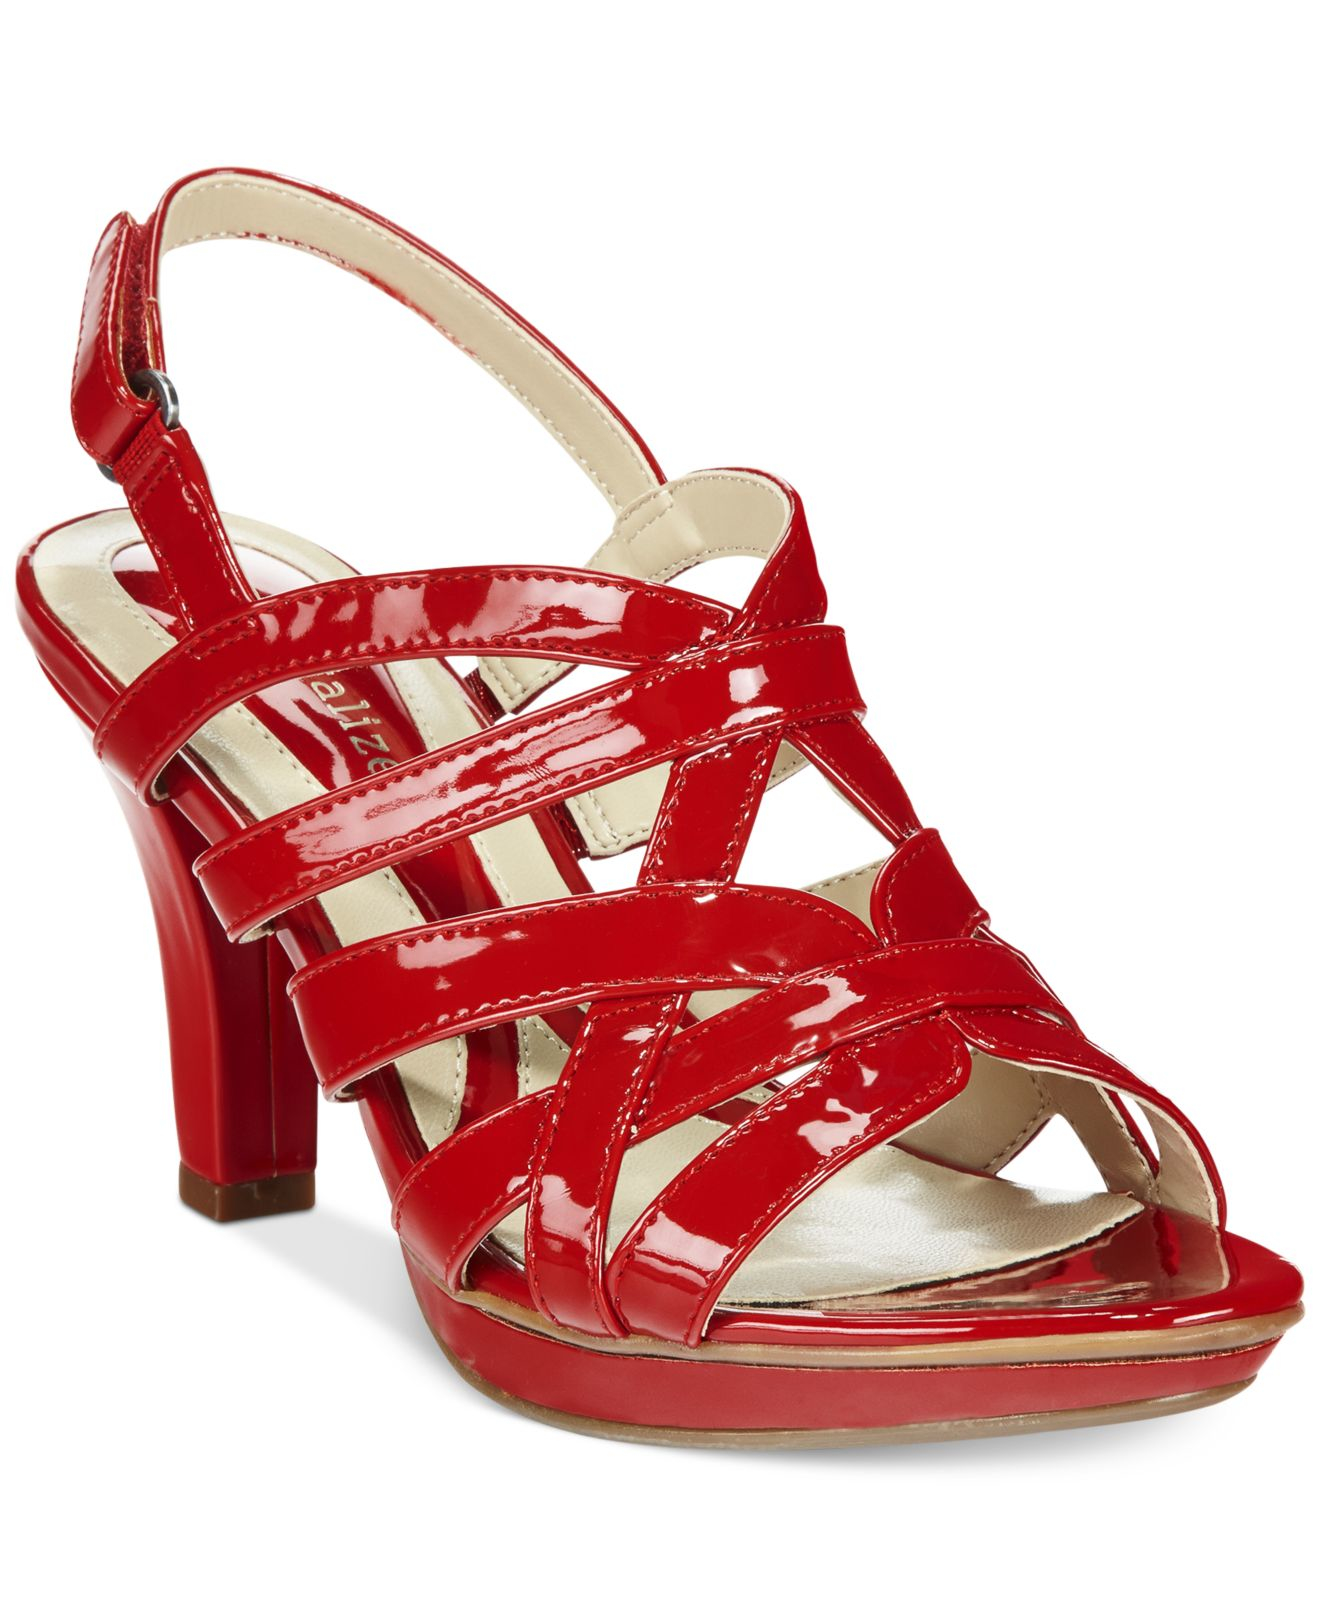 00c0203dd2fa Lyst - Naturalizer Delma Platform Dress Sandals in Red